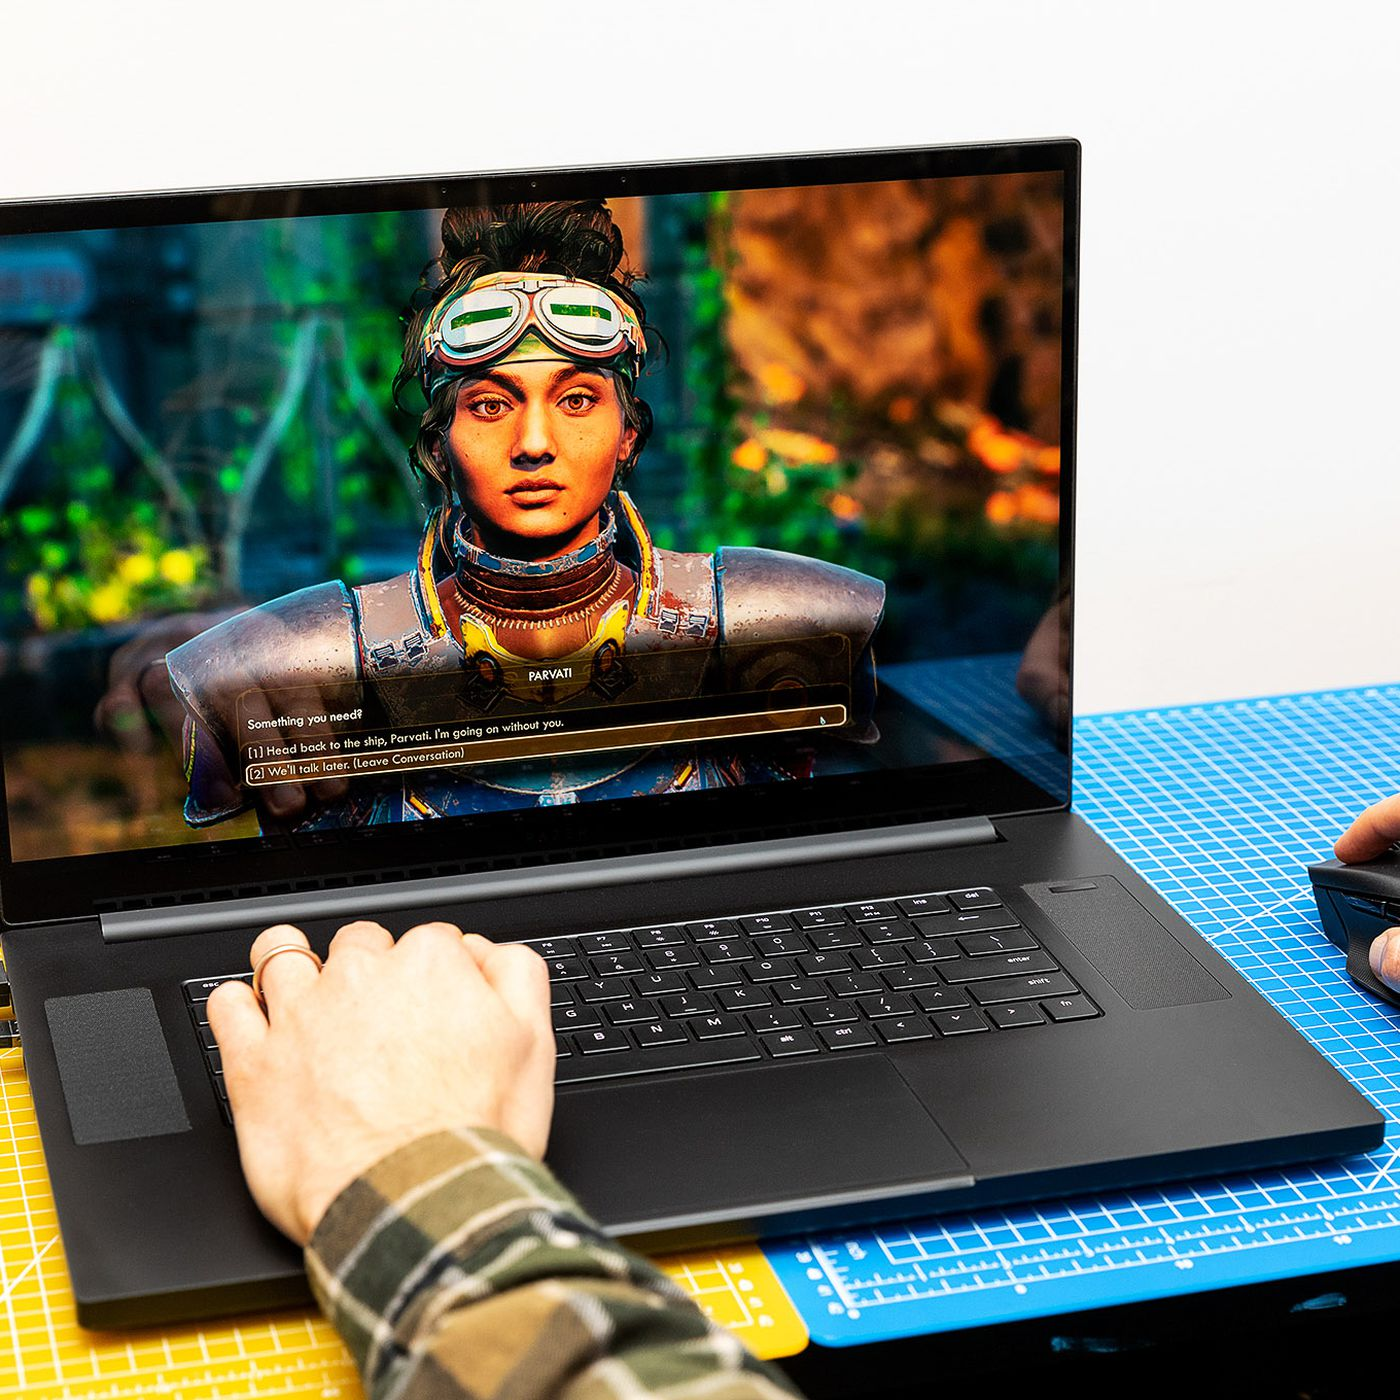 Today S Best Gaming Laptop Deals Razer Blades Msi Stealth And Hp Omen The Verge